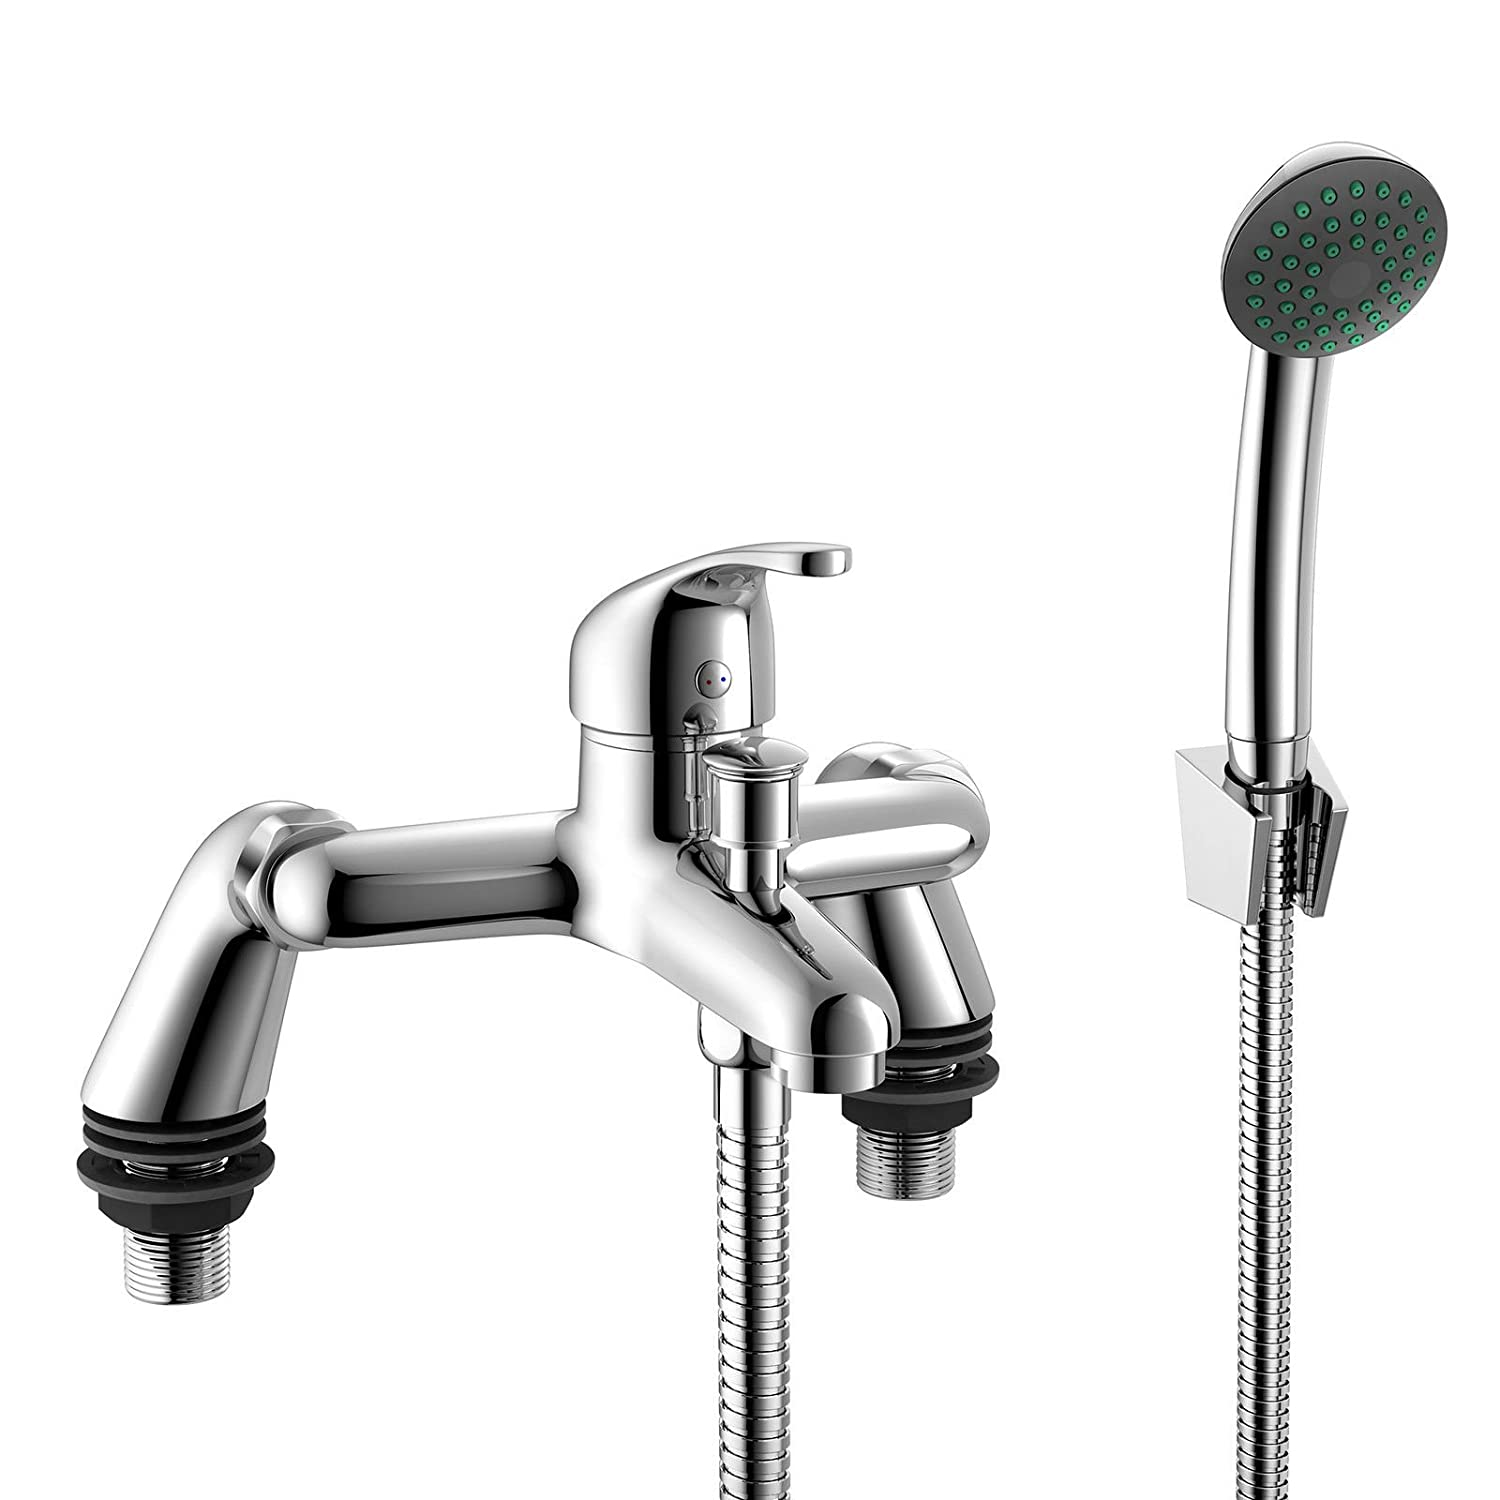 Shower Mixer Bath Filler Tap Set Bathroom Kit Sink Basin Set Tap ...